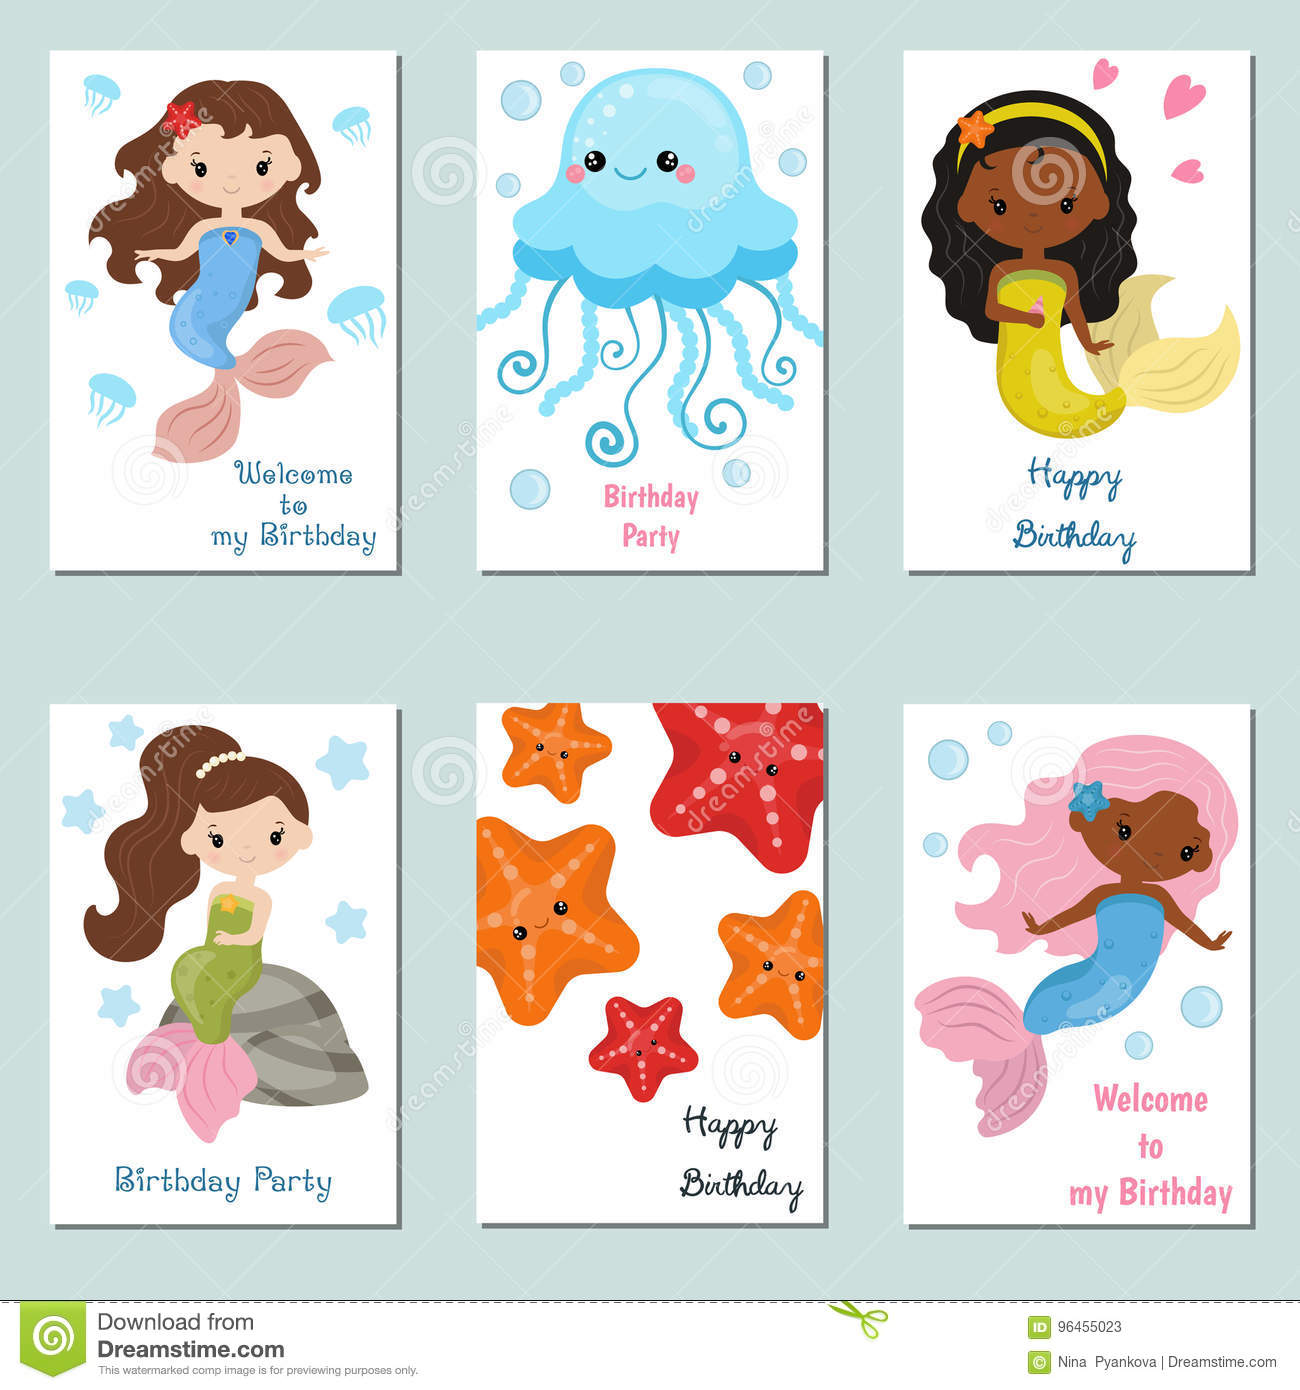 Set Of Beautiful Birthday Invitation Cards Decorated With Cute Girl Mermaids And Sea Animals